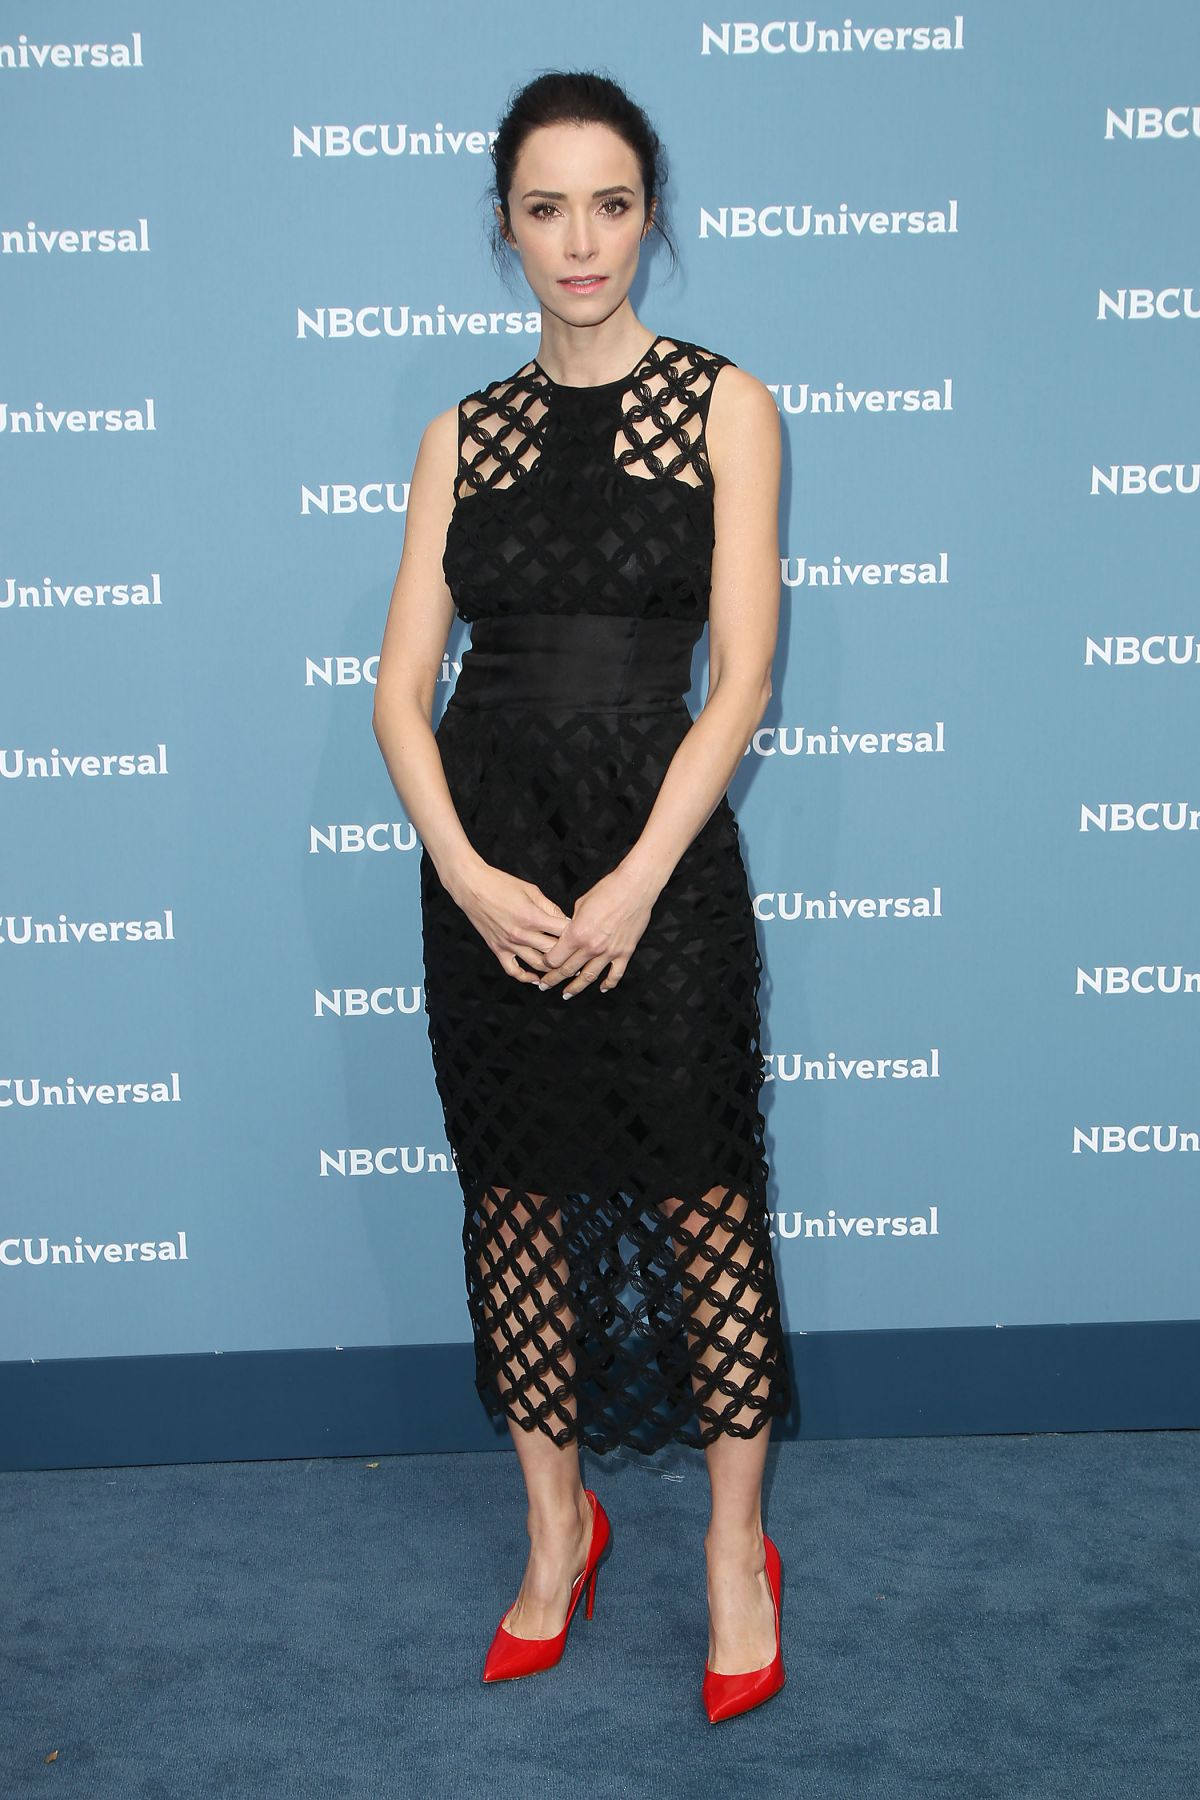 ABIGAIL SPENCER at NBC/Universal Upfront Presentation in New York 05/16/2016